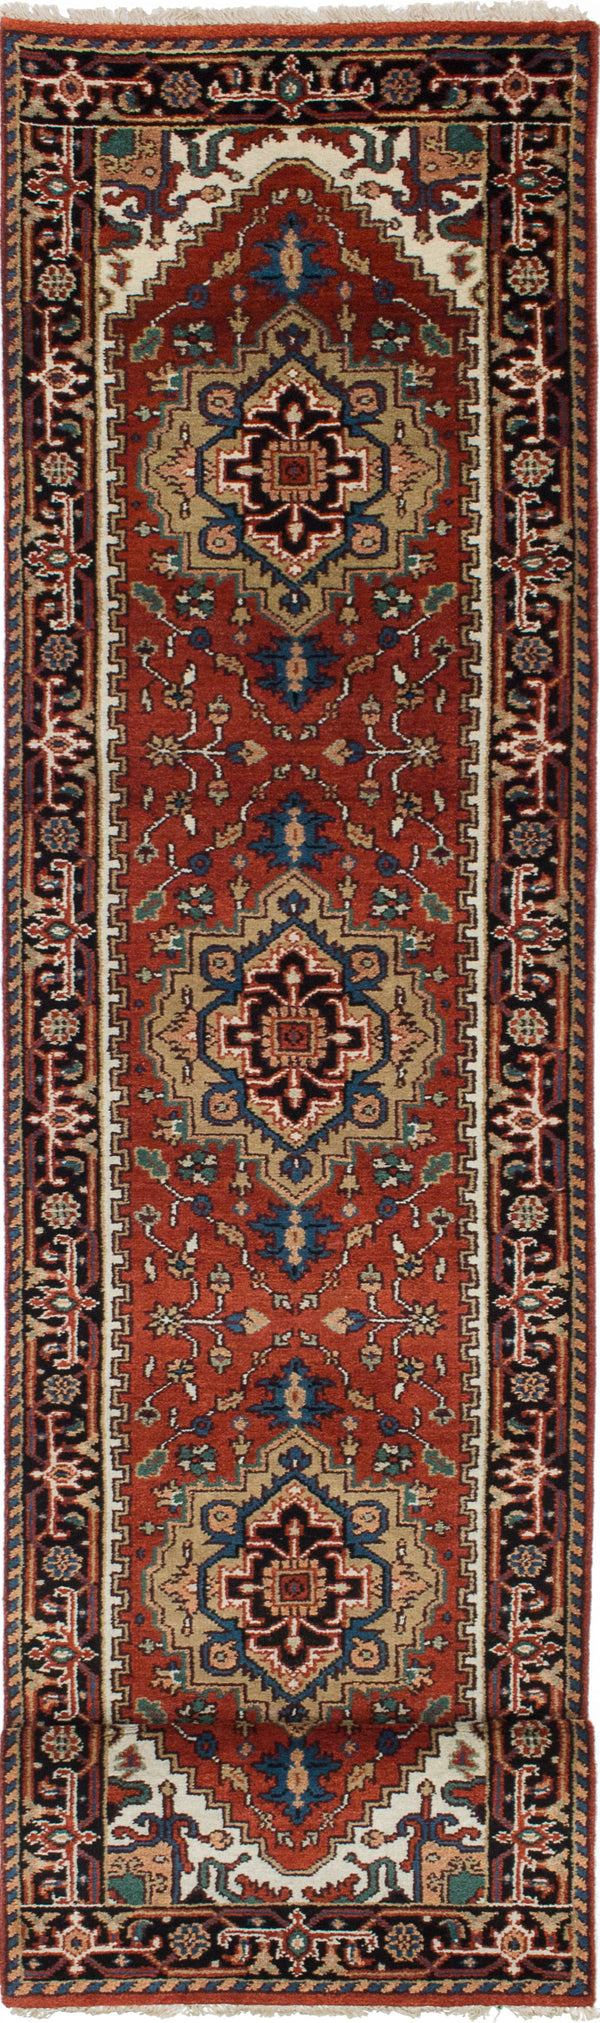 "Hand-knotted Indian Floral  Traditional Serapi-Heritage Runner rug  Dark Orange 2'6 x 11'10"" """